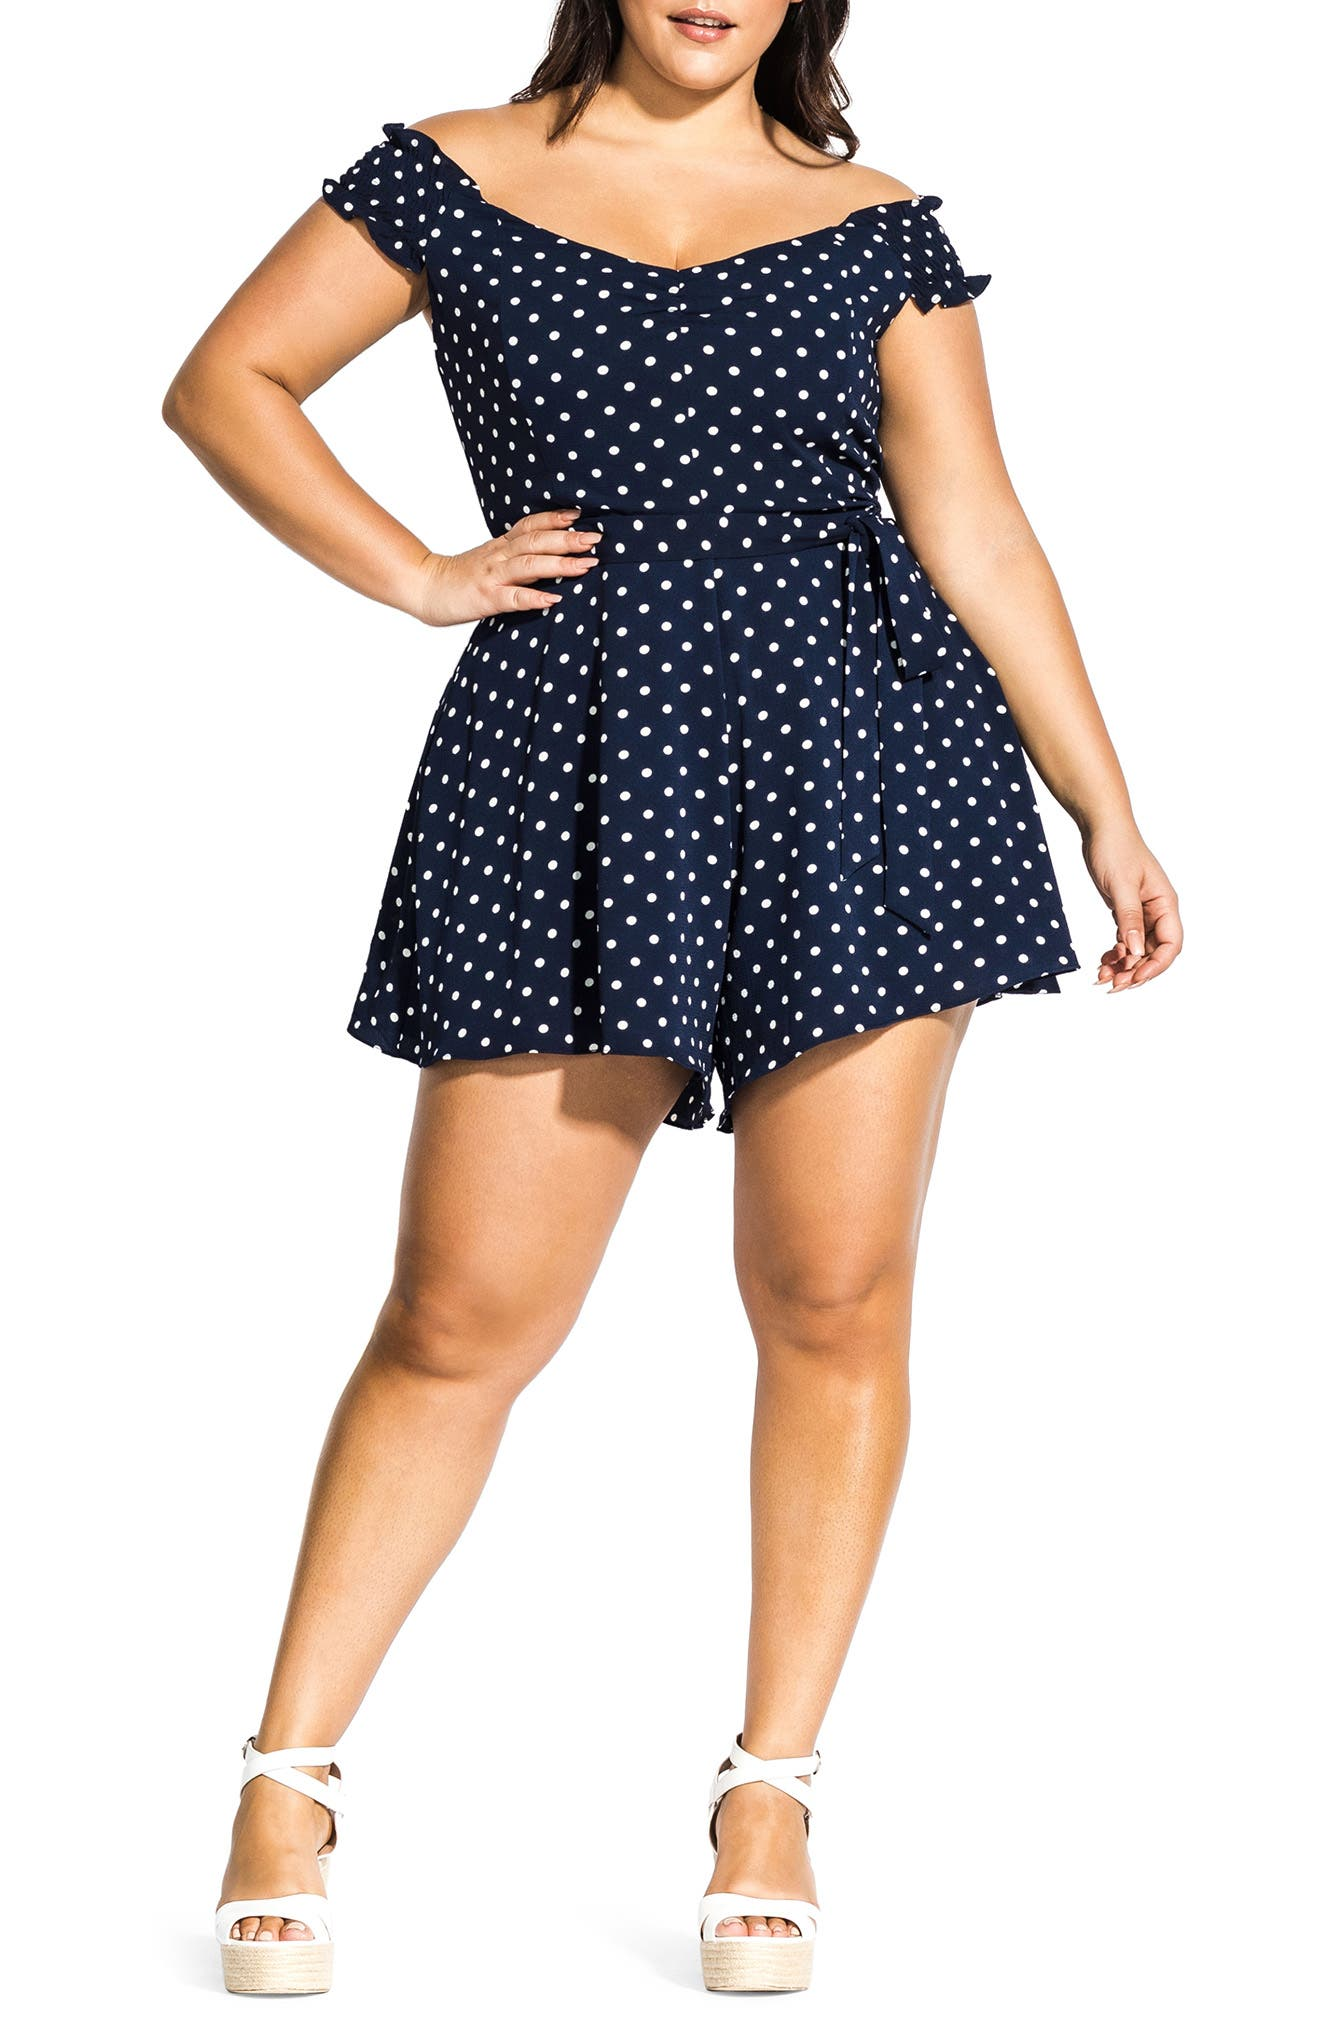 Vintage Rompers, Playsuits | Retro, Pin Up, Rockabilly Playsuits Plus Size Womens City Chic Fresh Spot Romper $69.30 AT vintagedancer.com